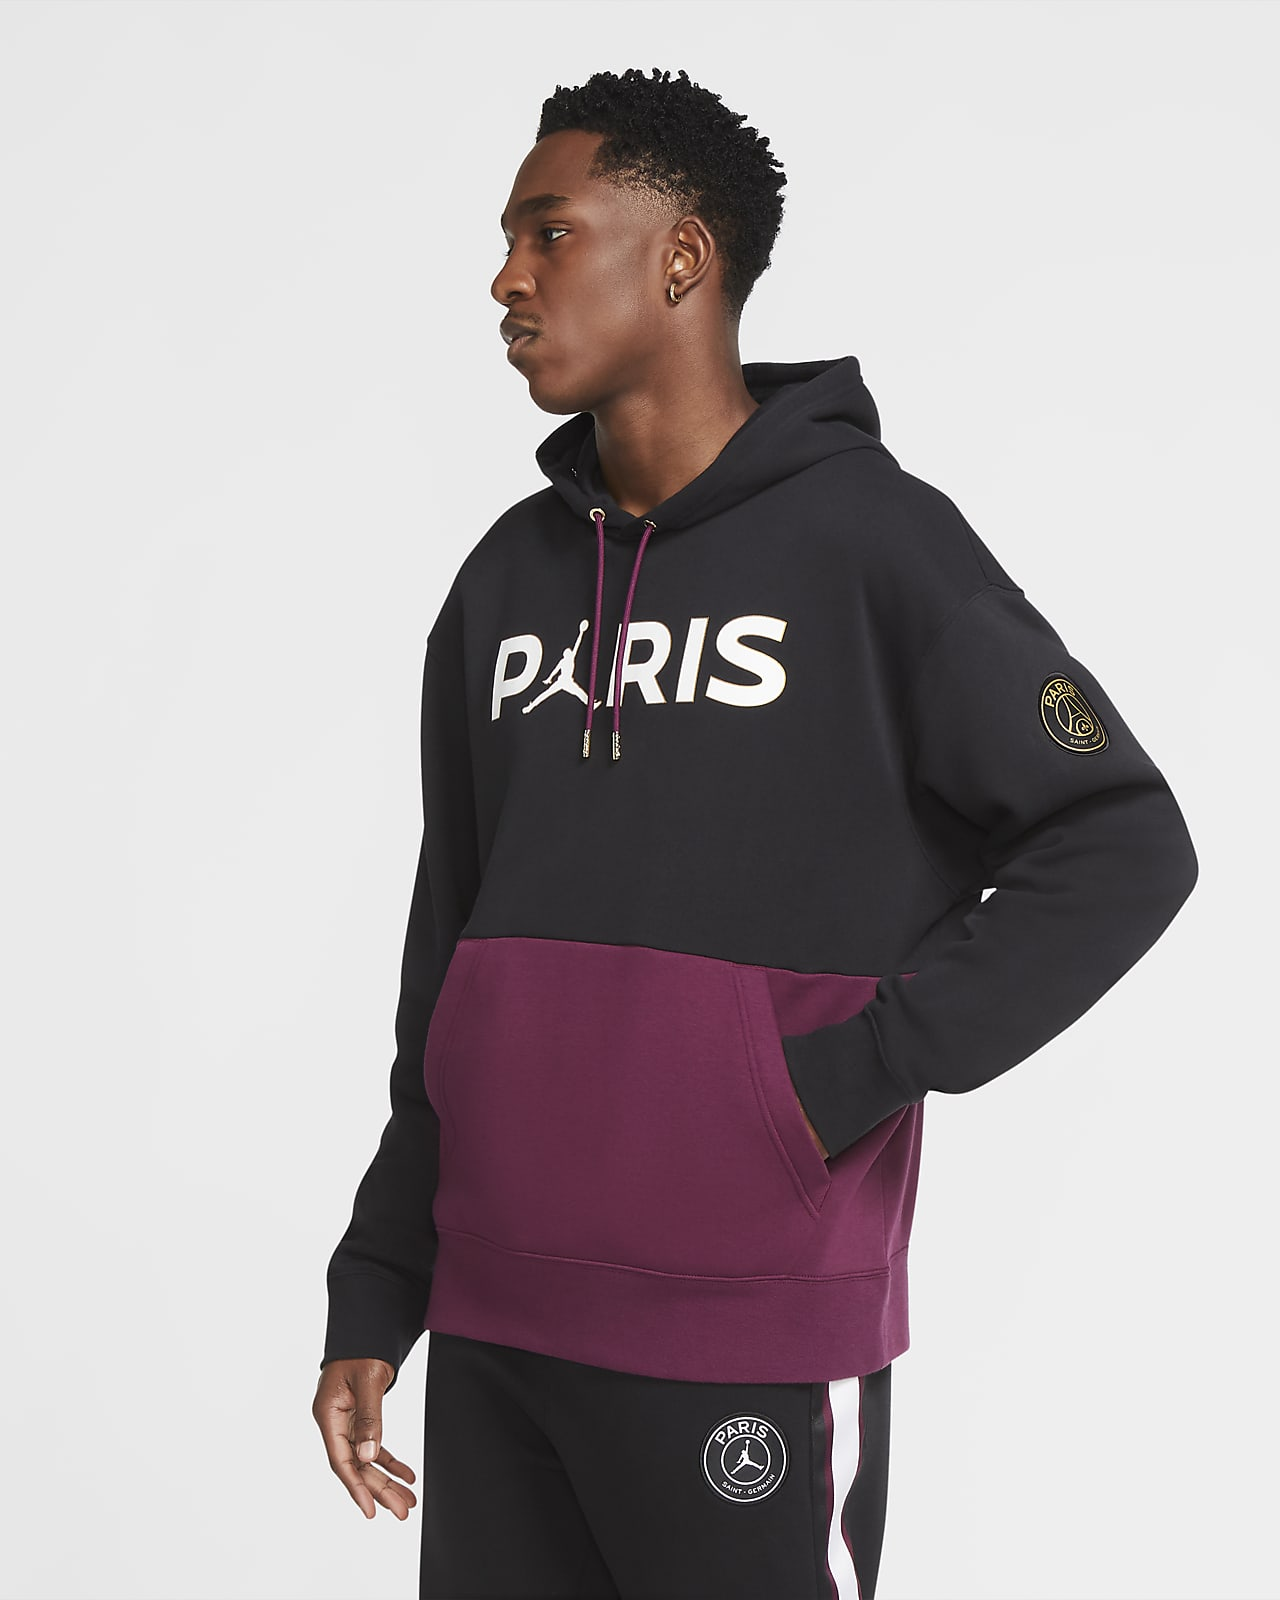 Paris Saint-Germain Fleece Erkek Kapüşonlu Sweatshirt'ü